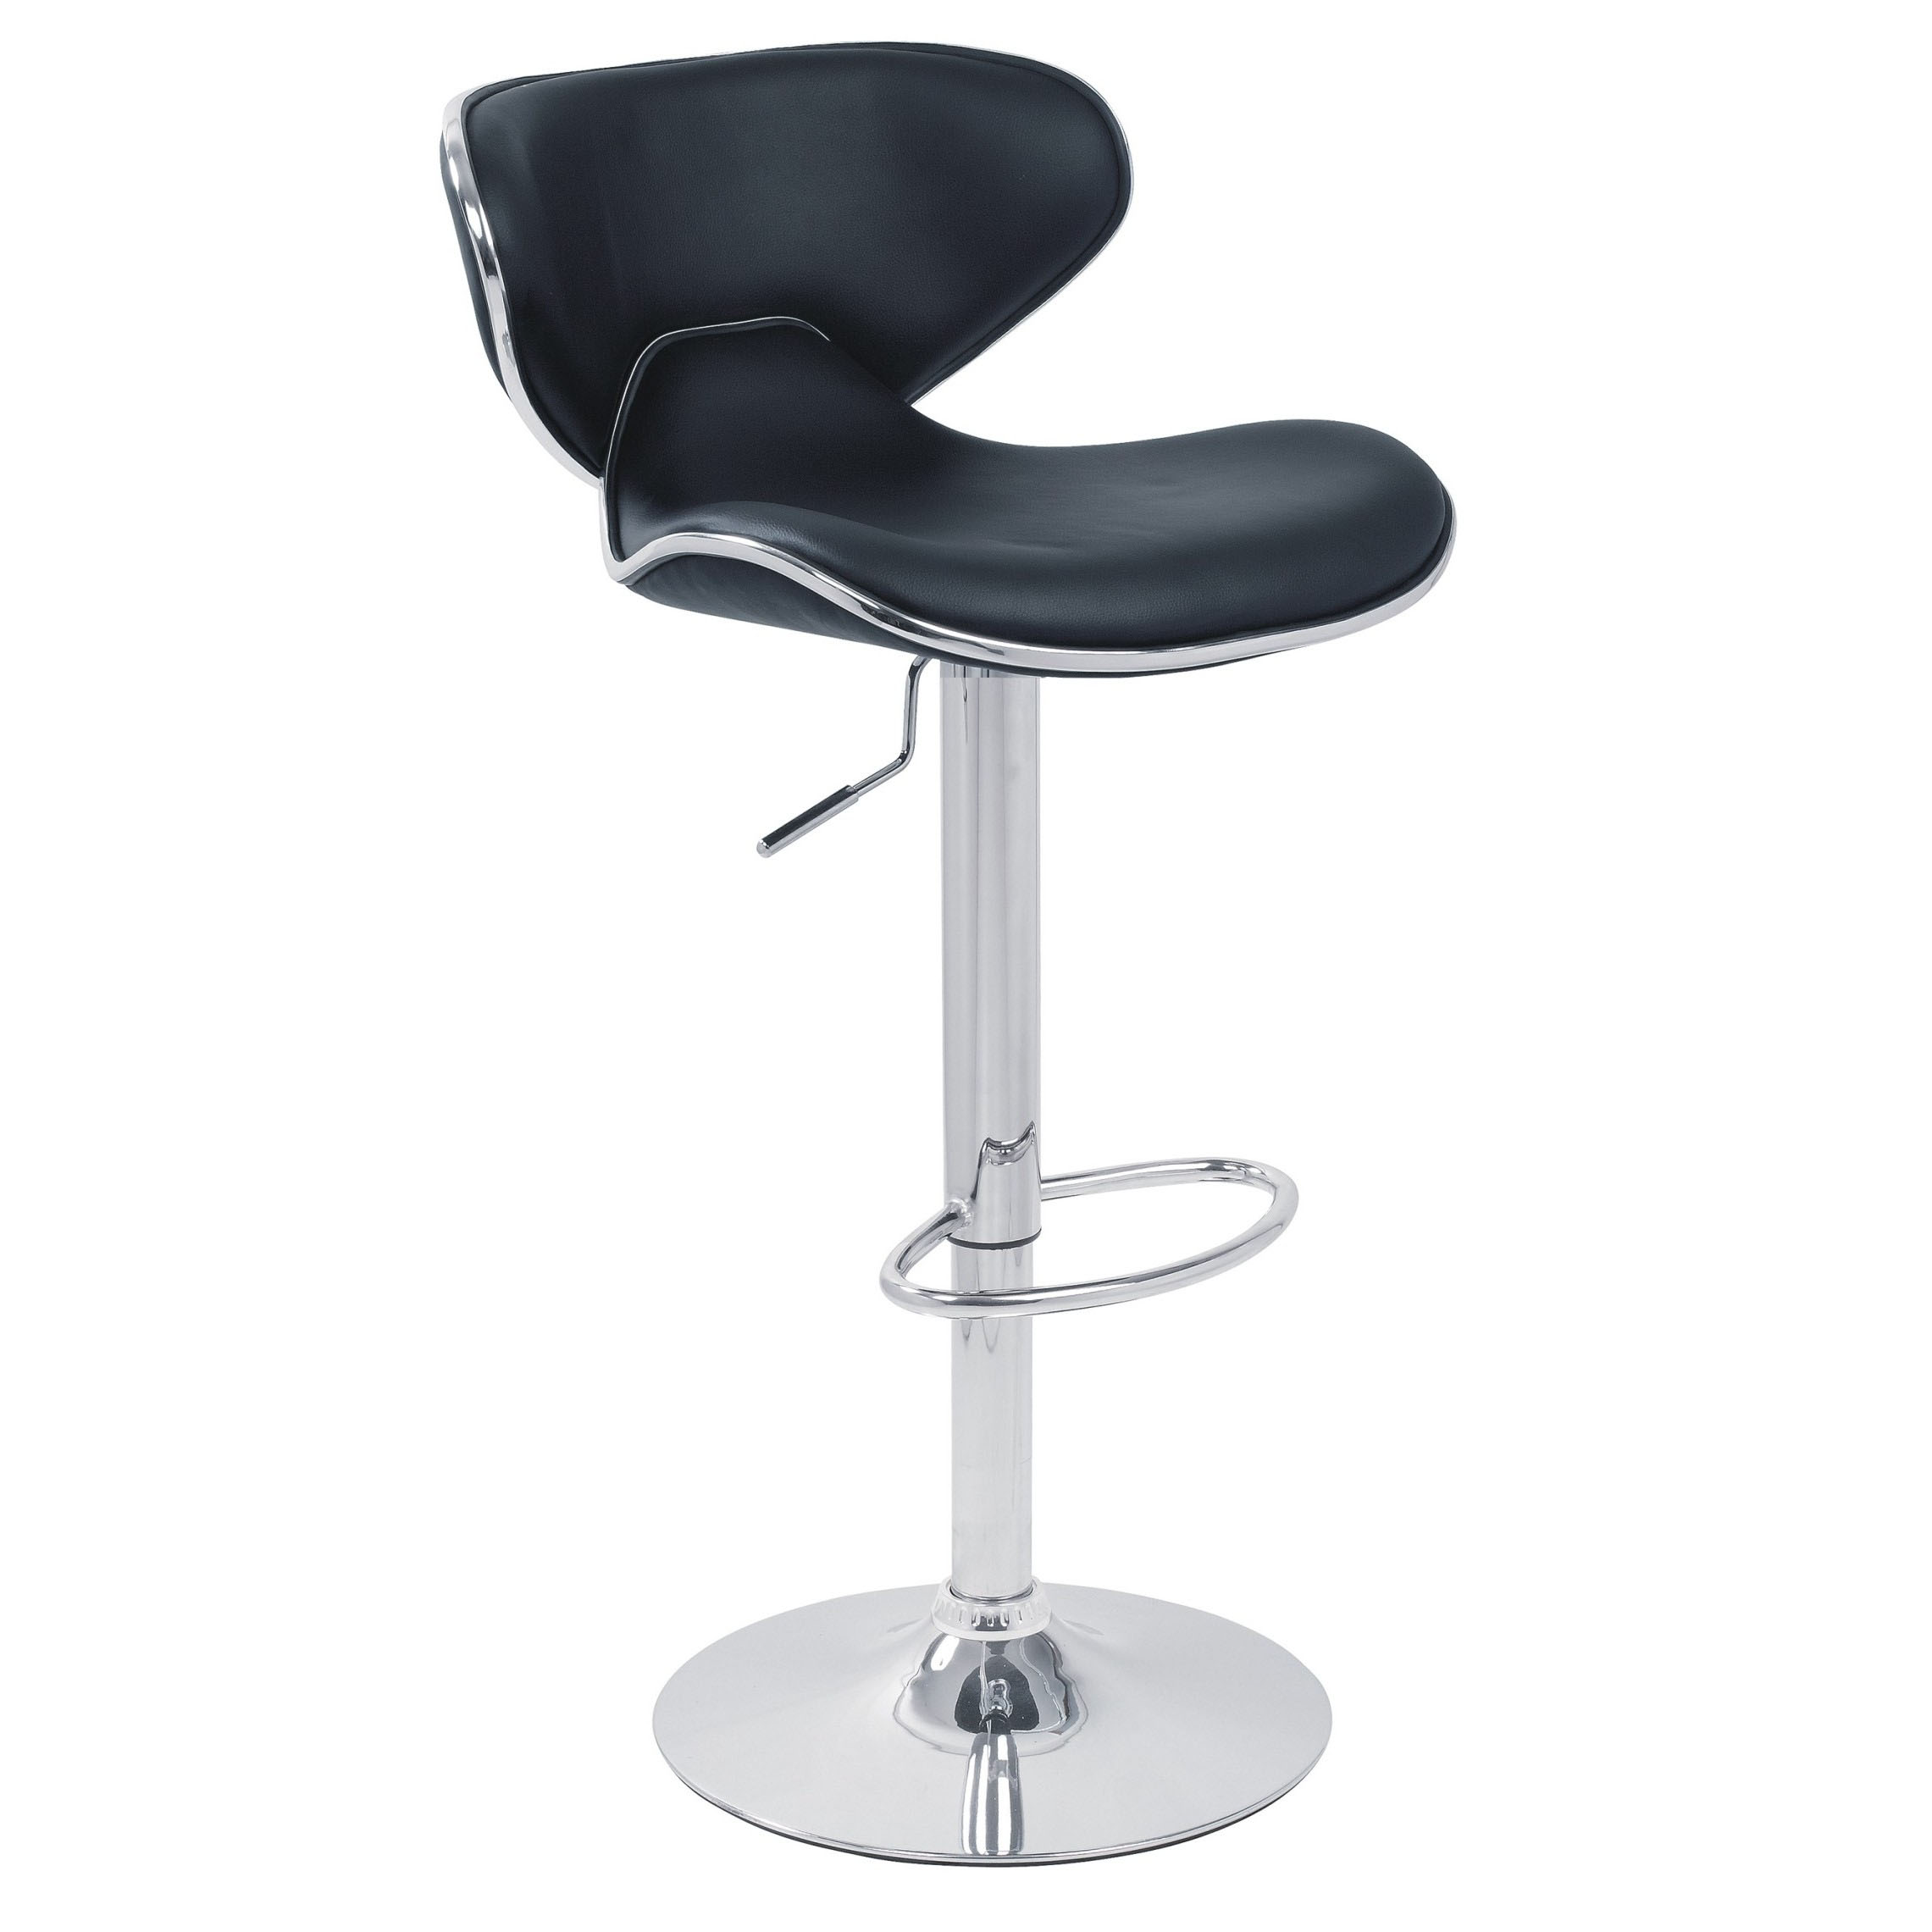 Carcaso Bar Stool - Black Product Image